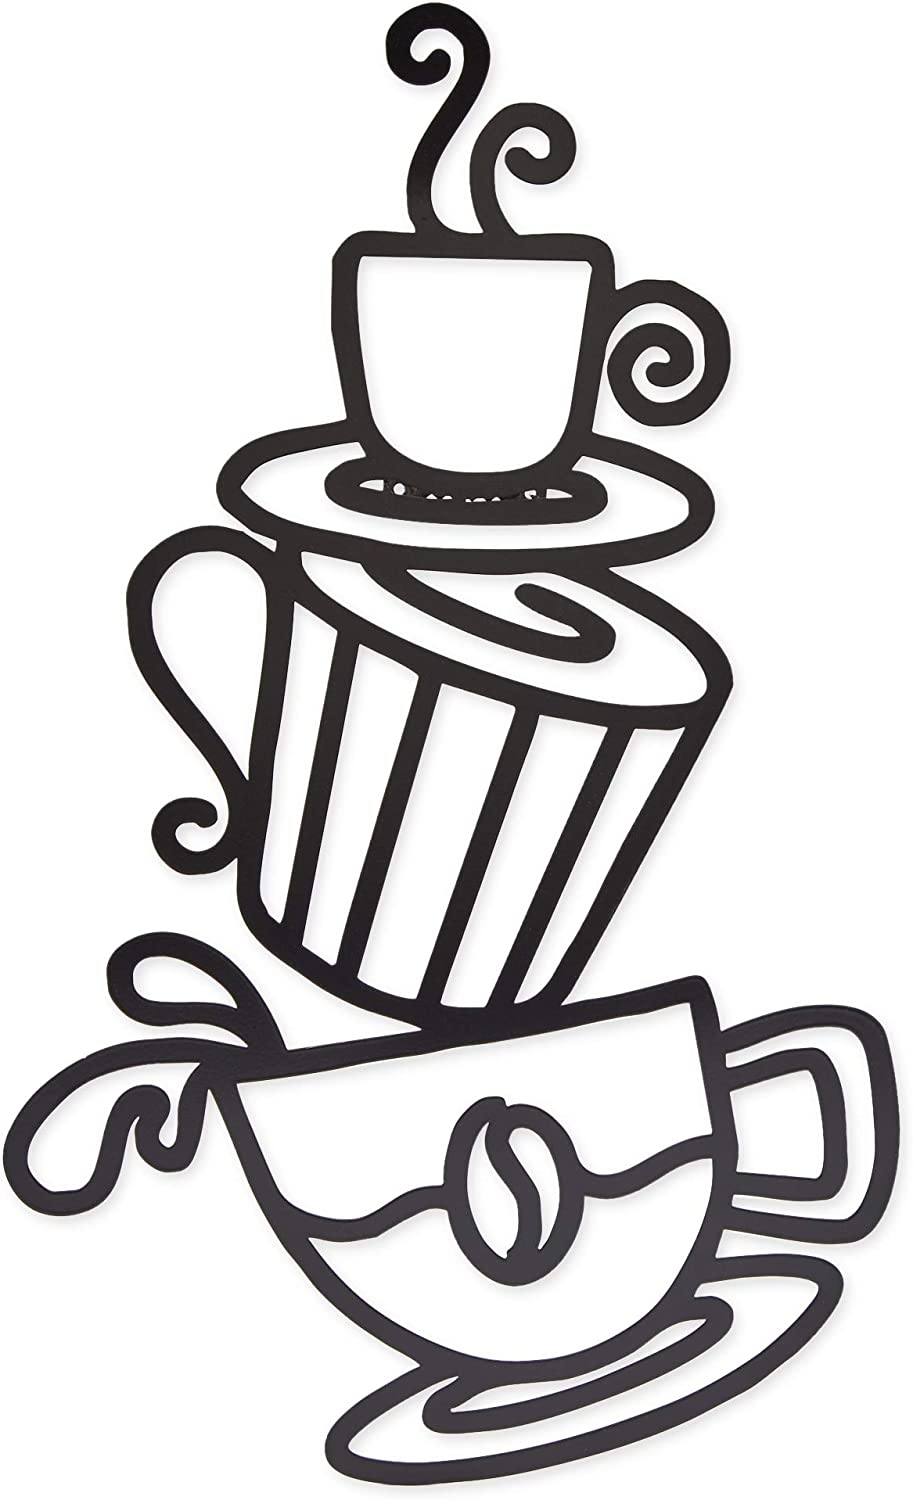 Metal Coffee Cup Wall Sign, Home Kitchen Décor (Black, 8.8 x 14 Inches)